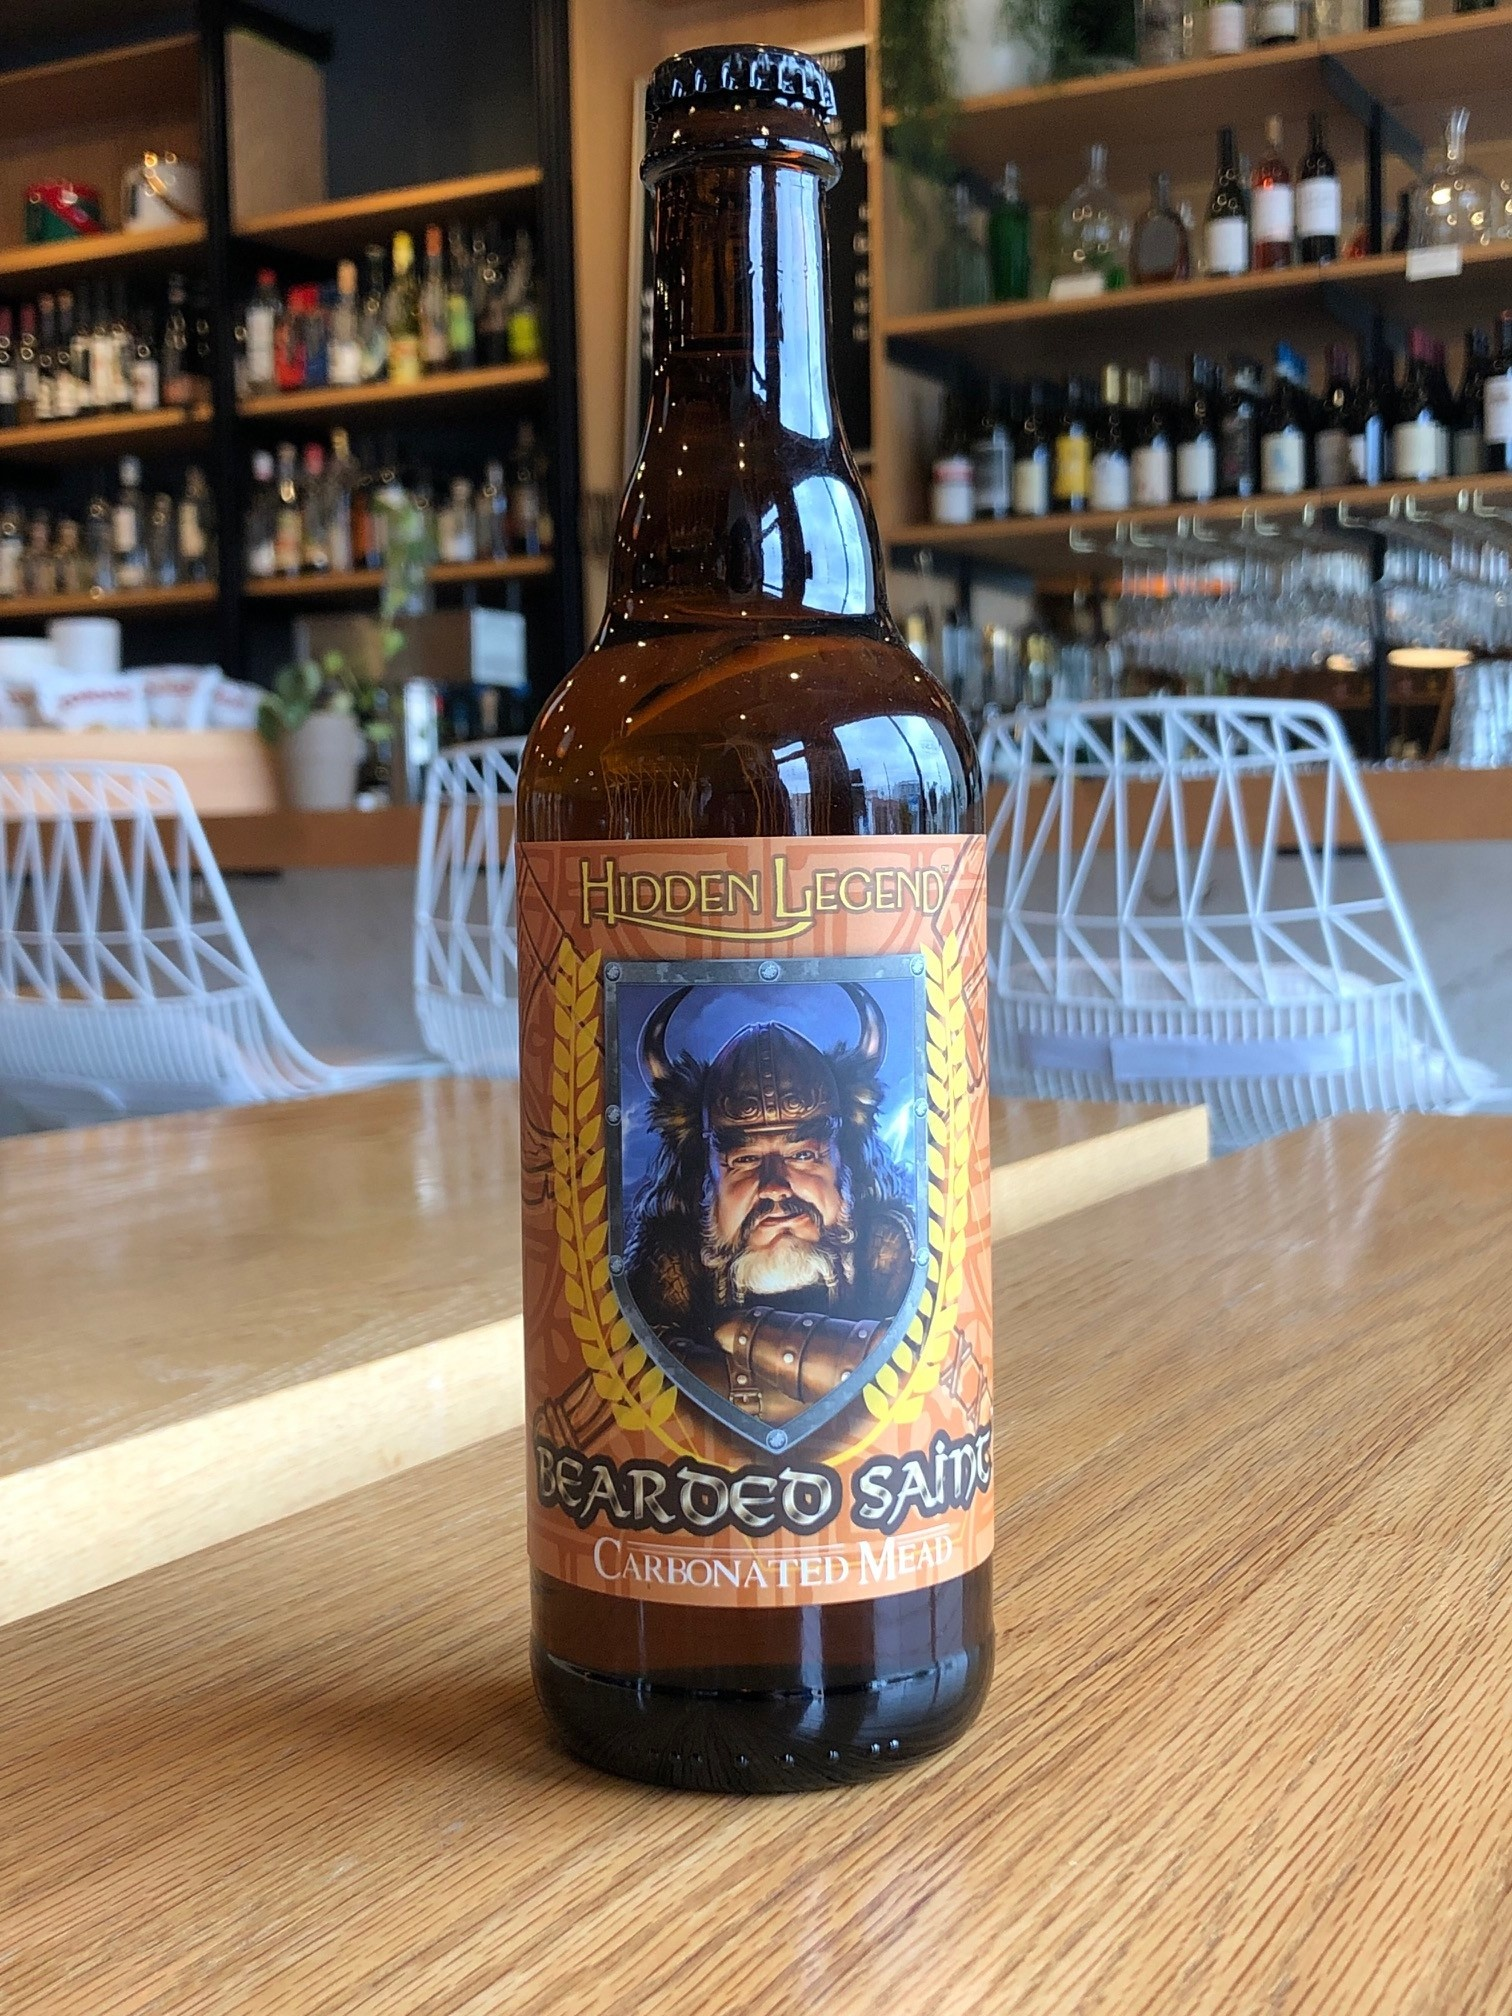 Hidden Legend Meads Hidden Legend 'Bearded Saint' Apple Mead 500ml